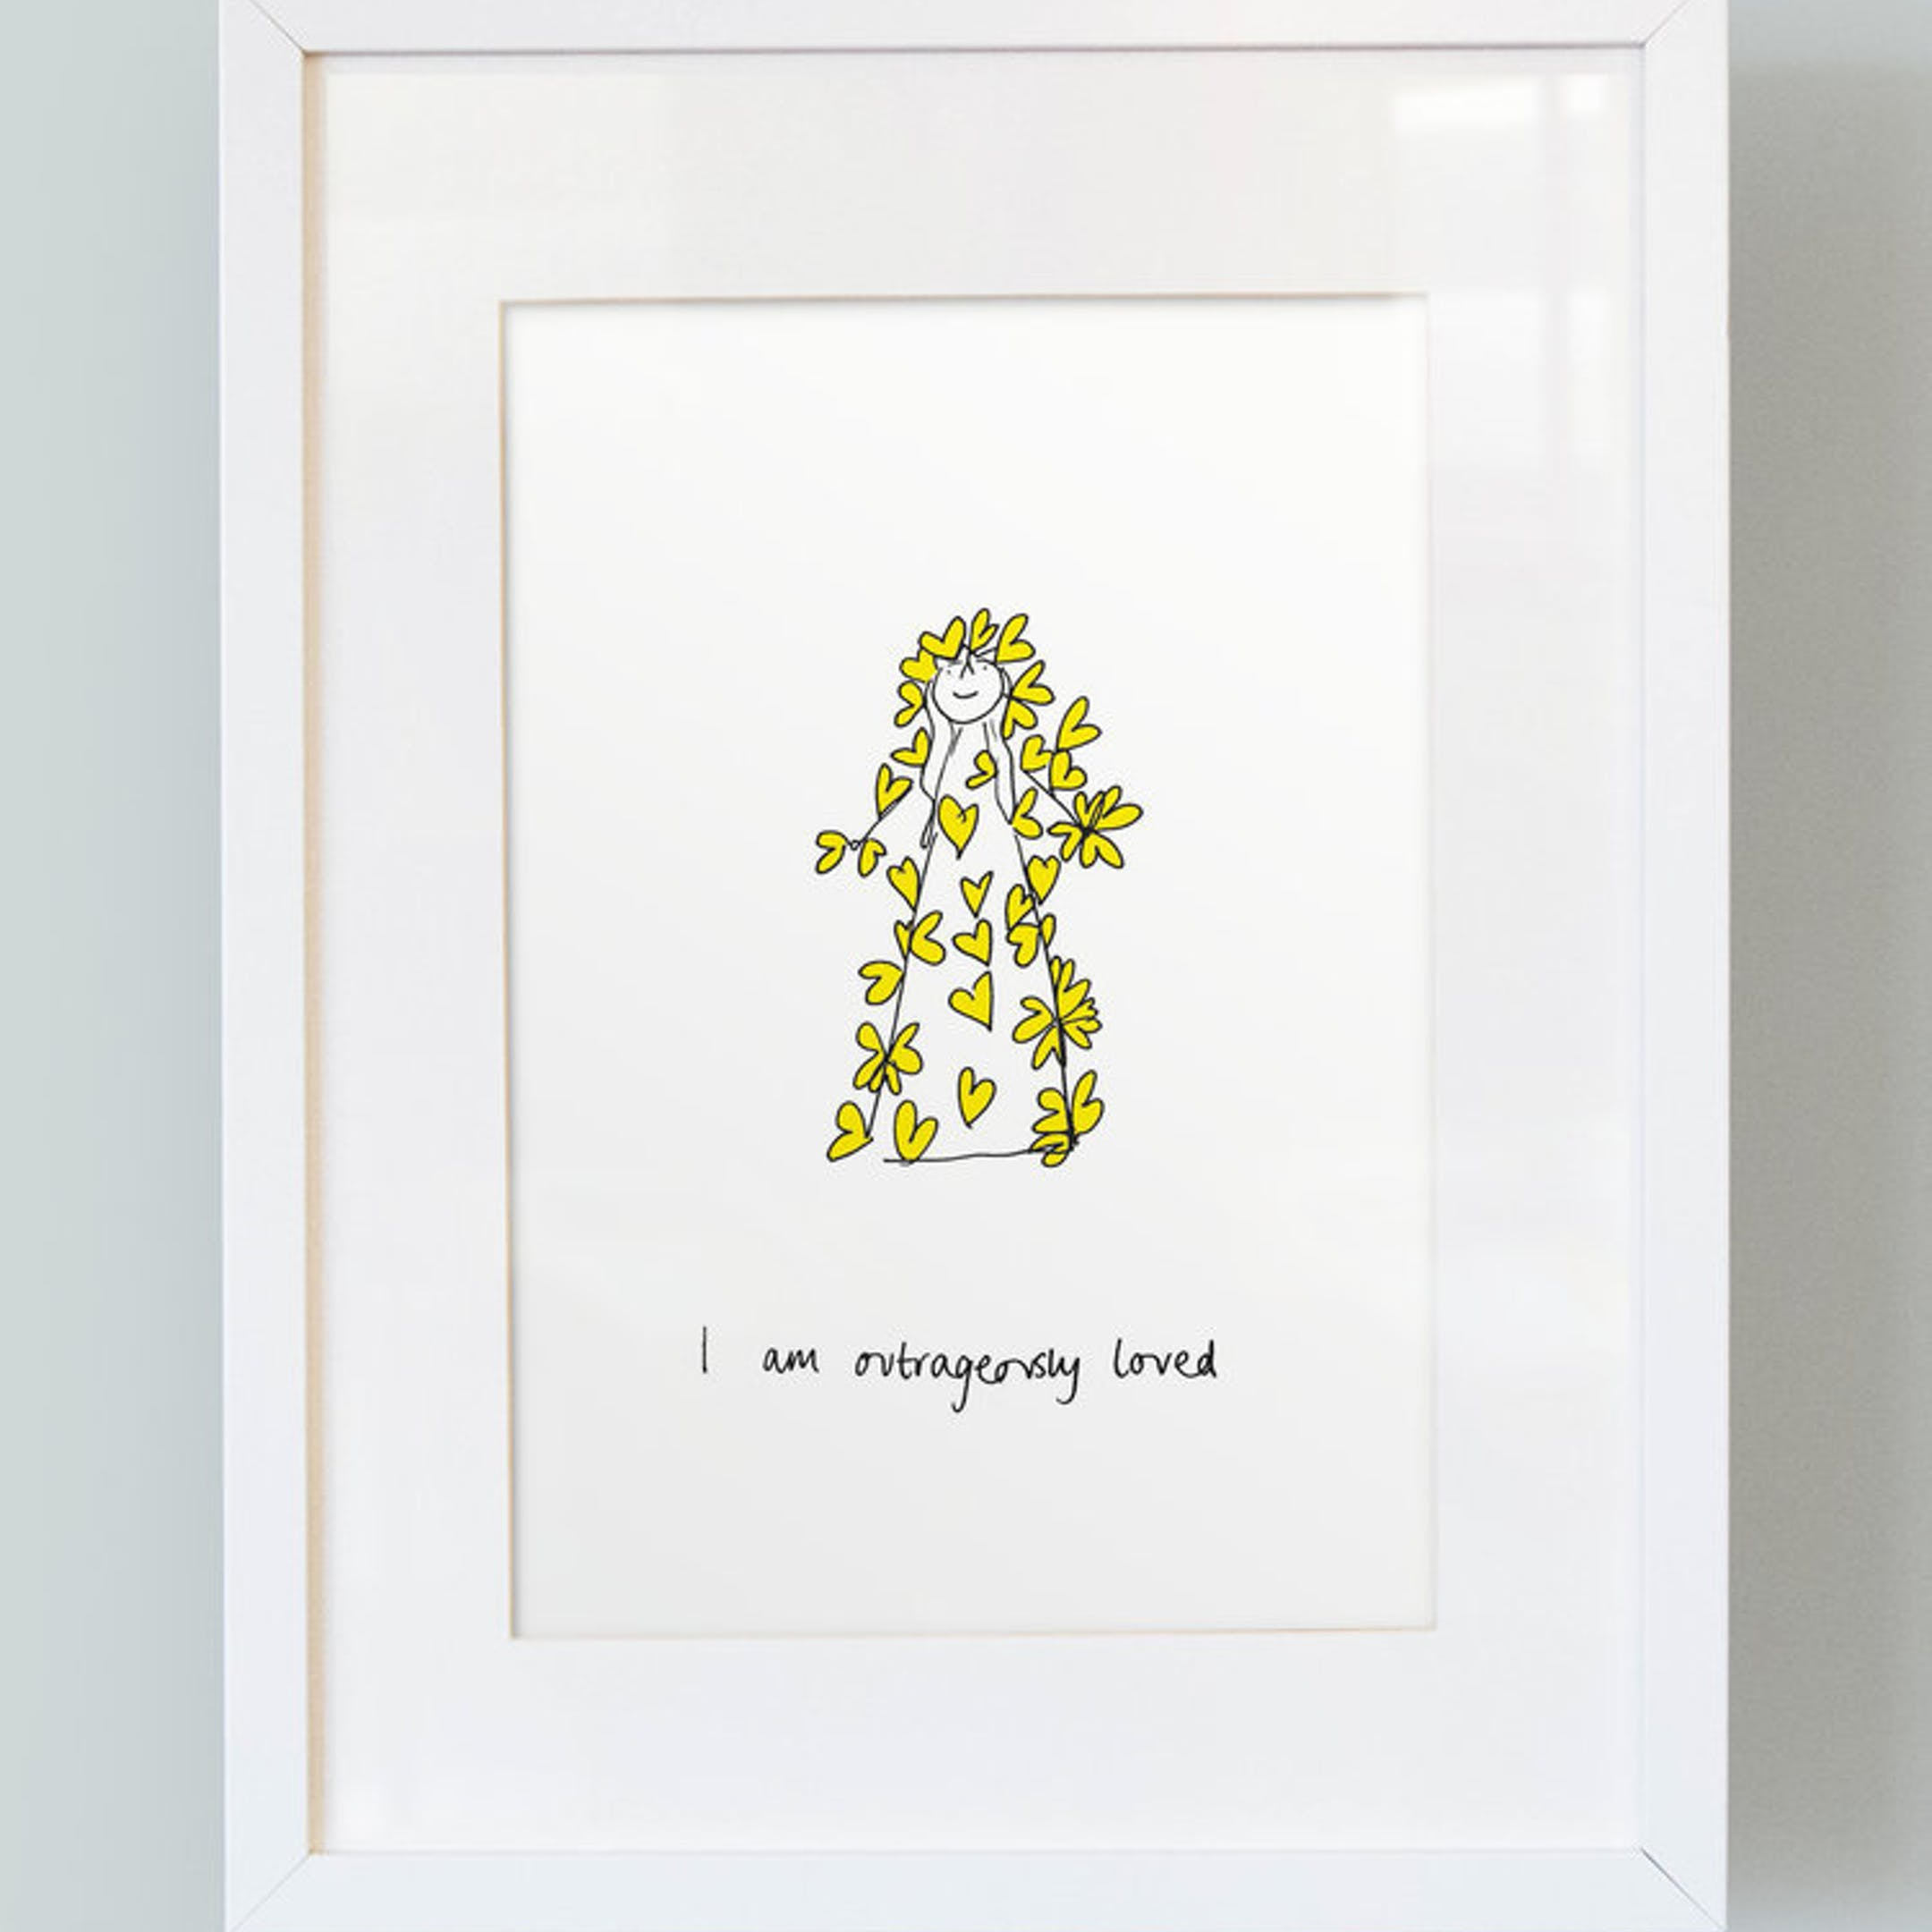 'I Am Outrageously Loved' -  Girl's Print - Thea Muir - So Many Things